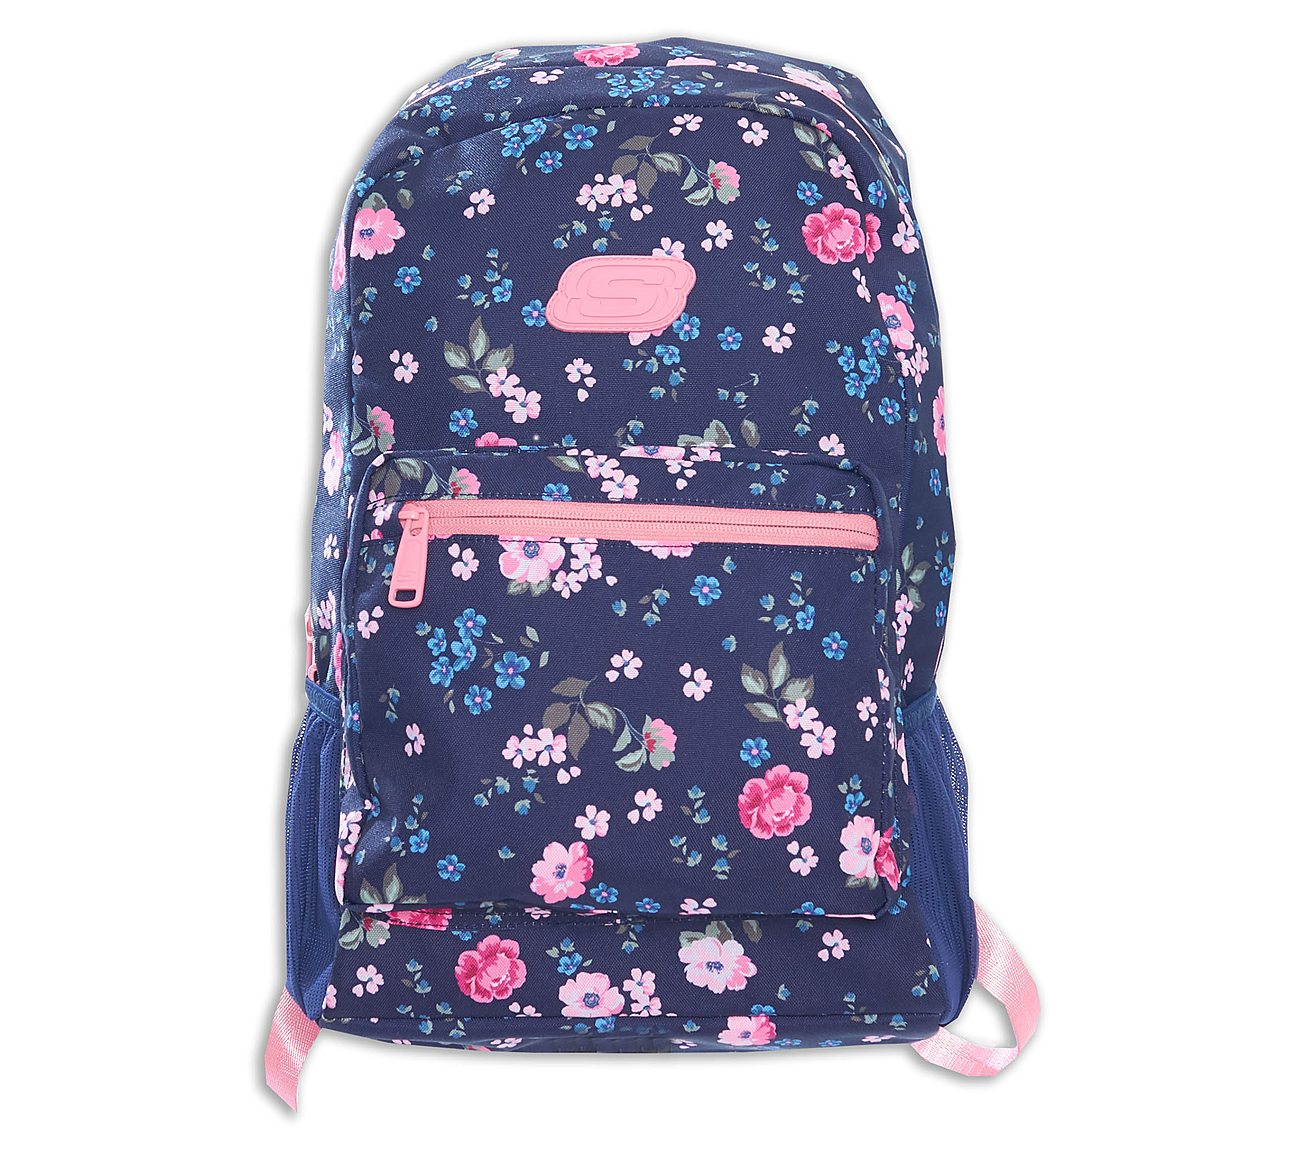 Soho Printed Backpack